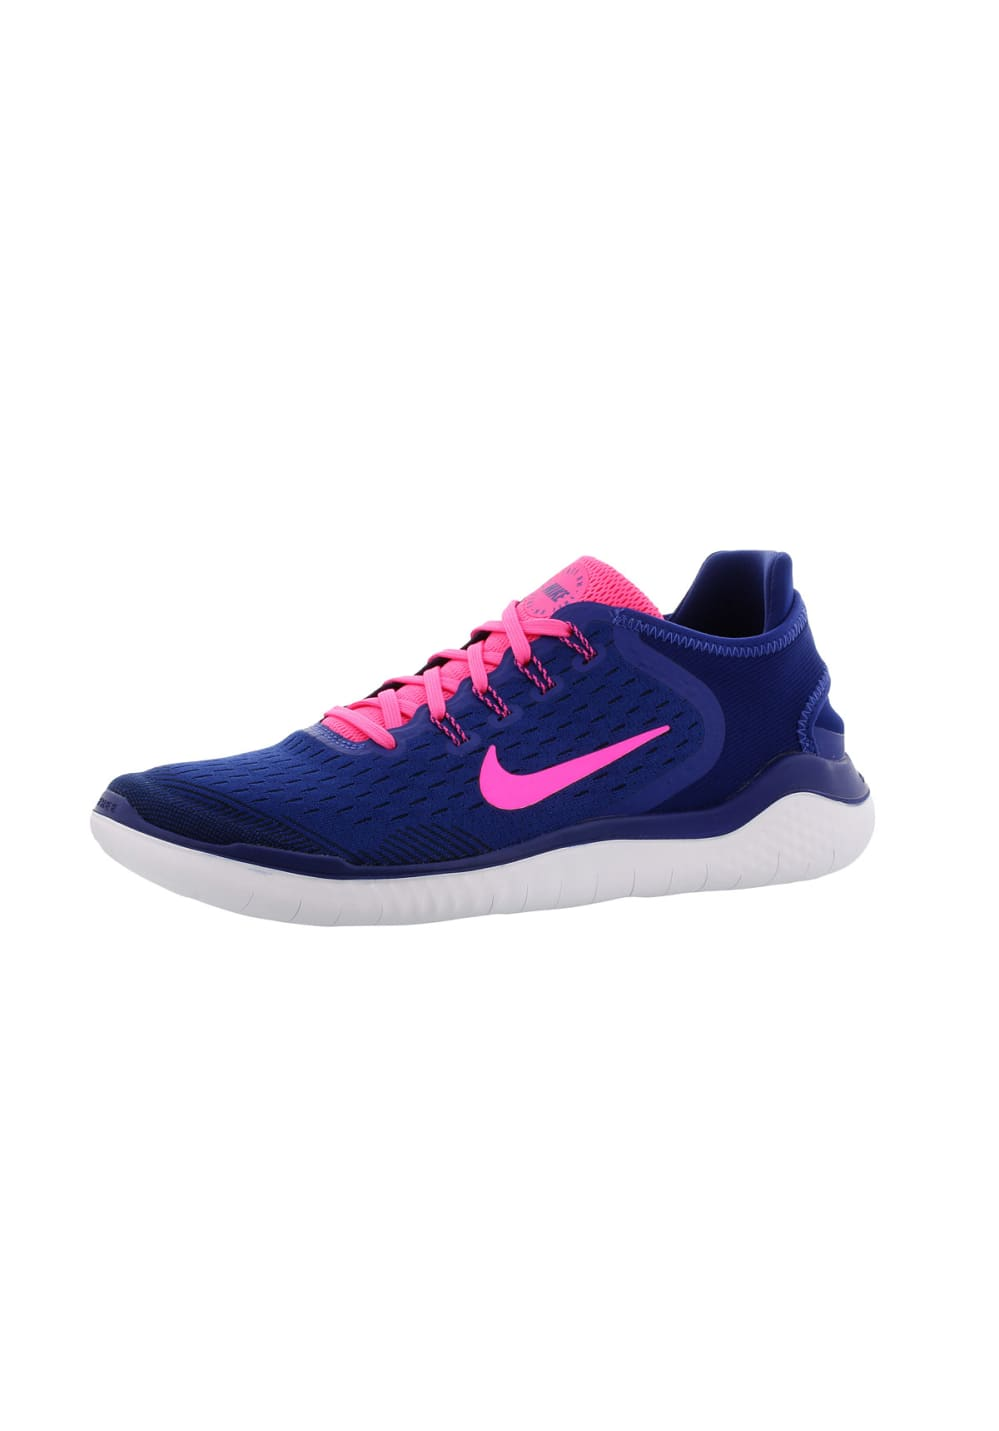 reputable site f6a1d 7fbd3 Next. -60%. Nike. Free RN 2018 - Chaussures running pour Femme